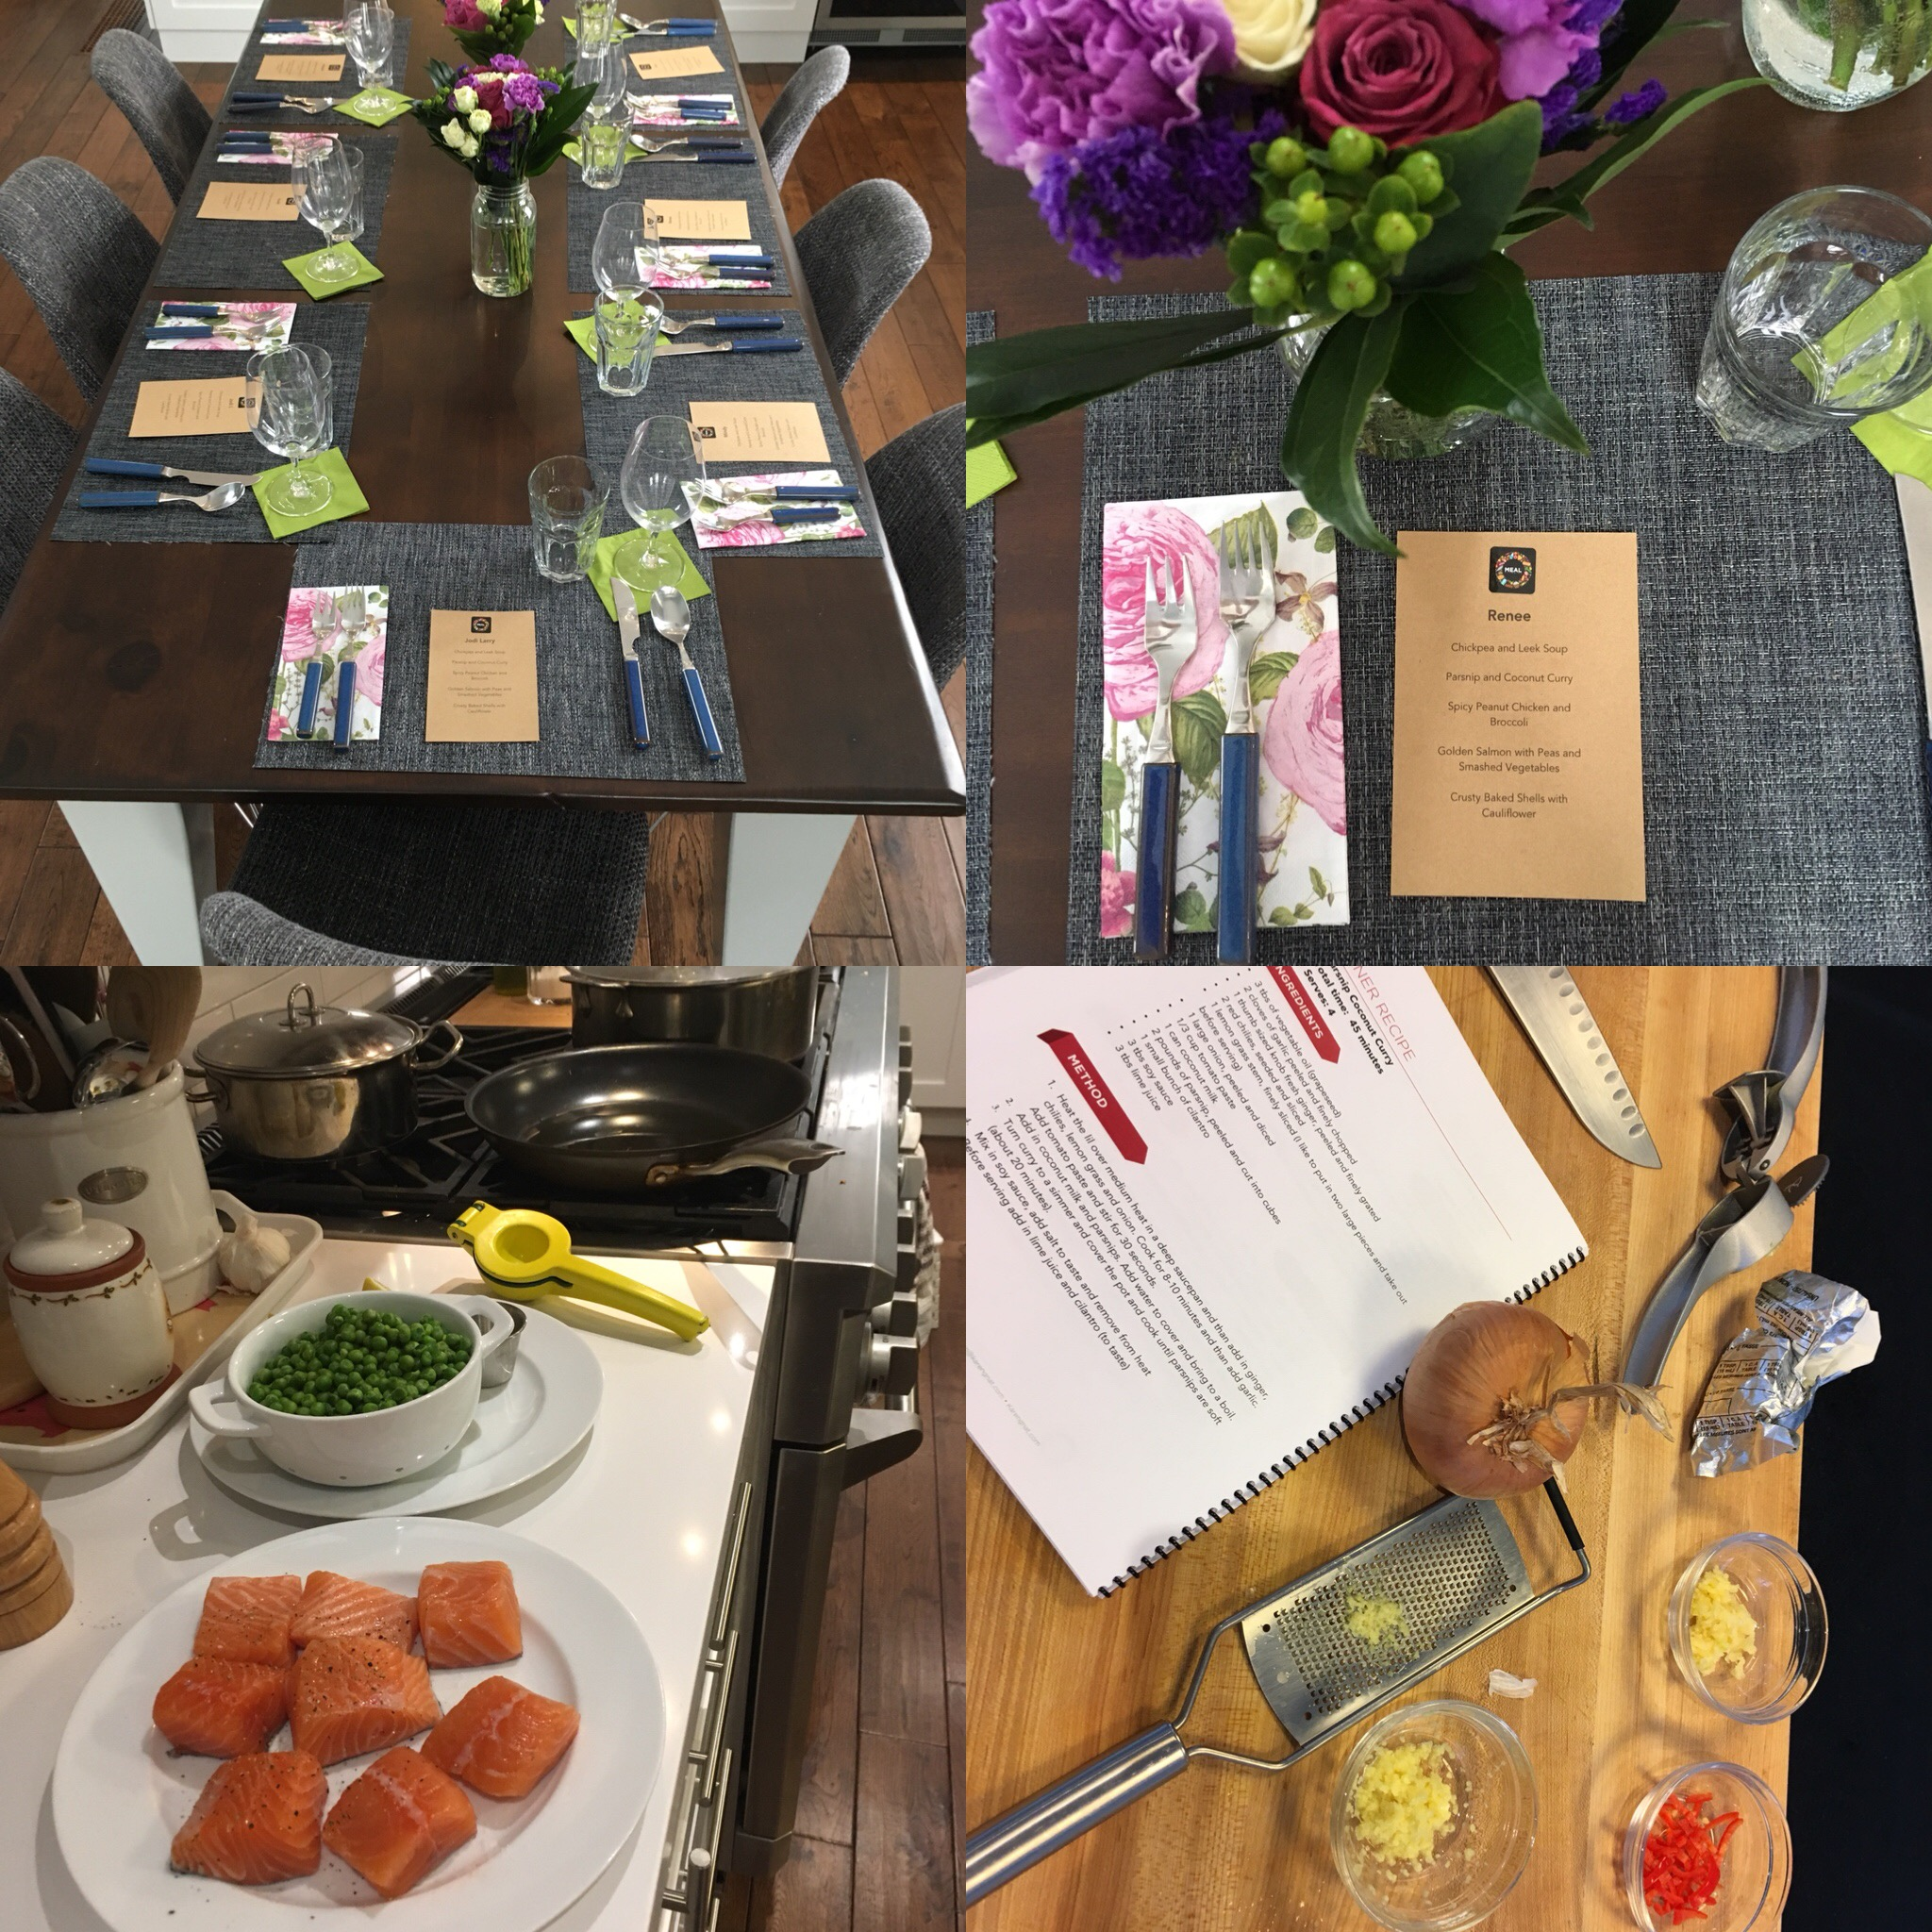 Meal Planning & Dinner Workshop - This is a fun workshop for friends to get together be served a healthy dinner to inspire new recipes for the season's meal planning adventure.